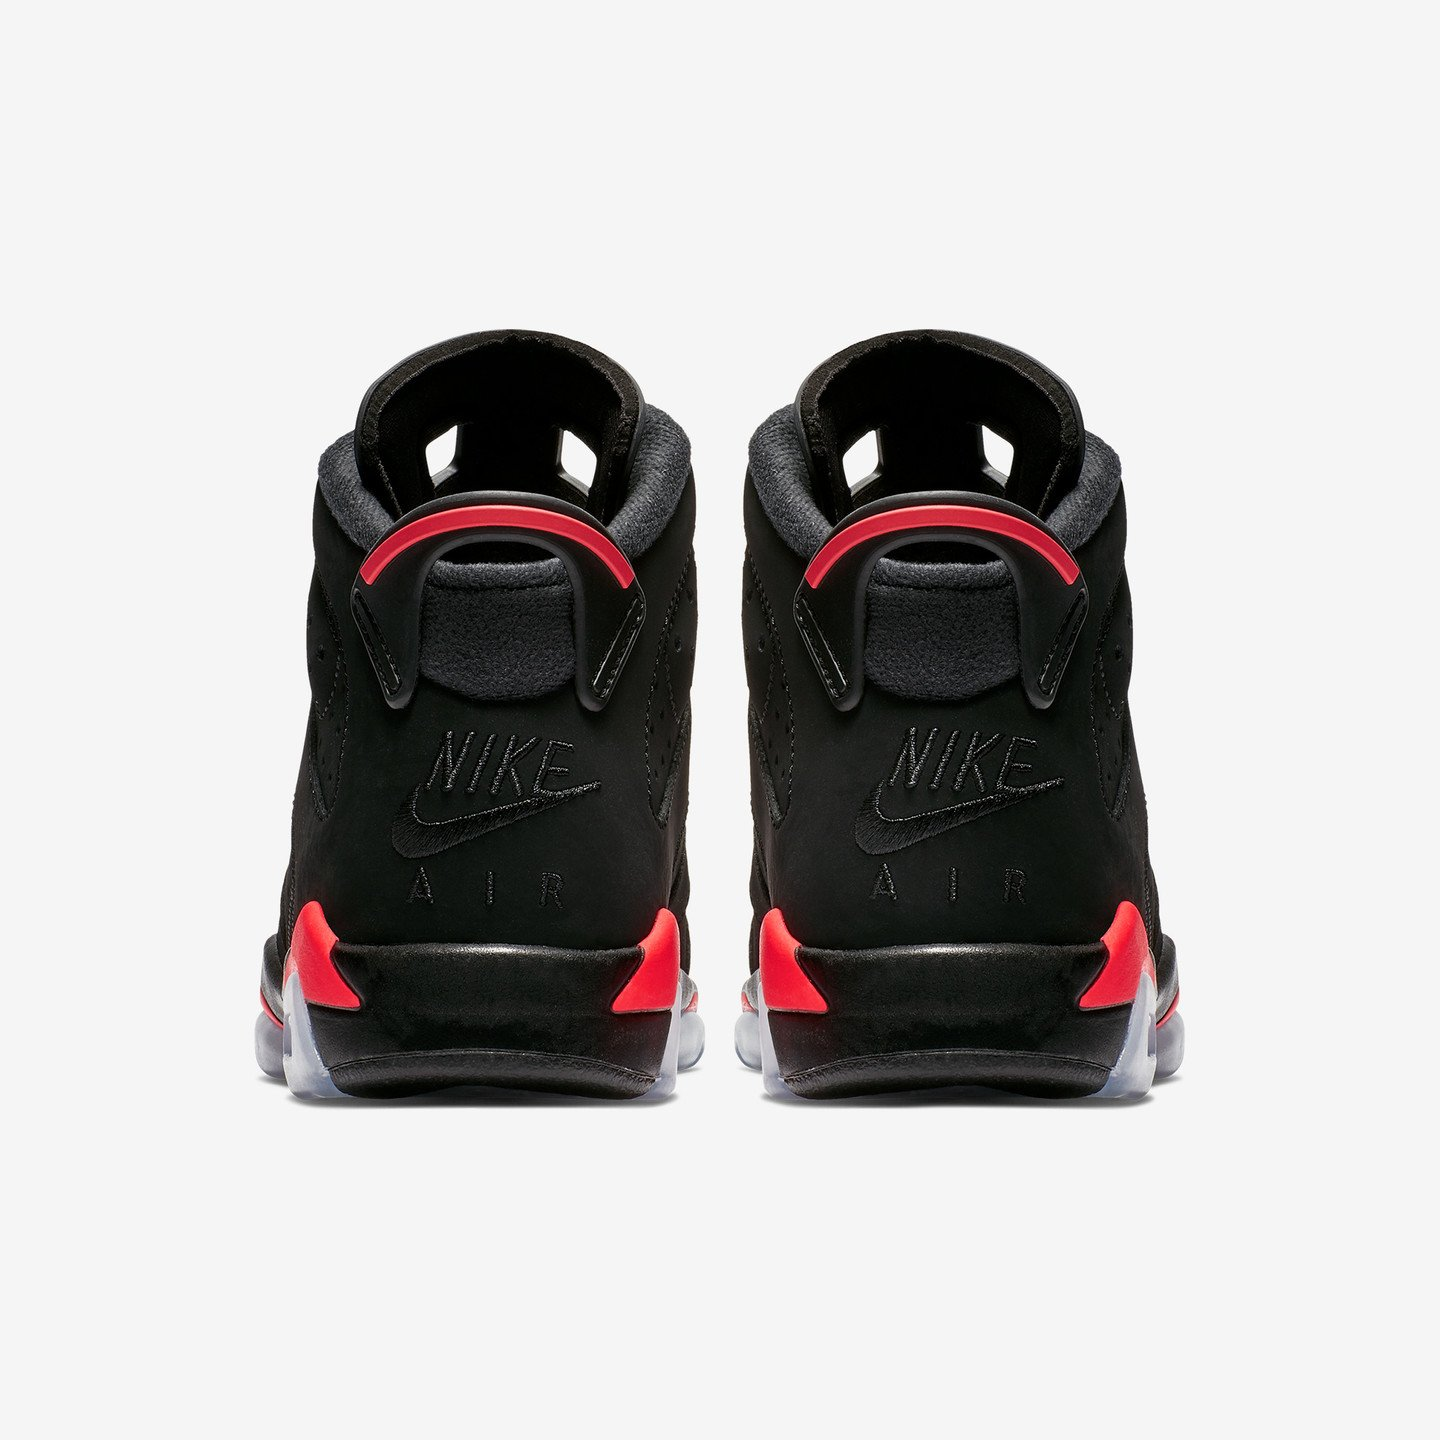 Jordan Air Jordan 6 Retro GS OG 'Infrared' Black / Infrared 384665-060